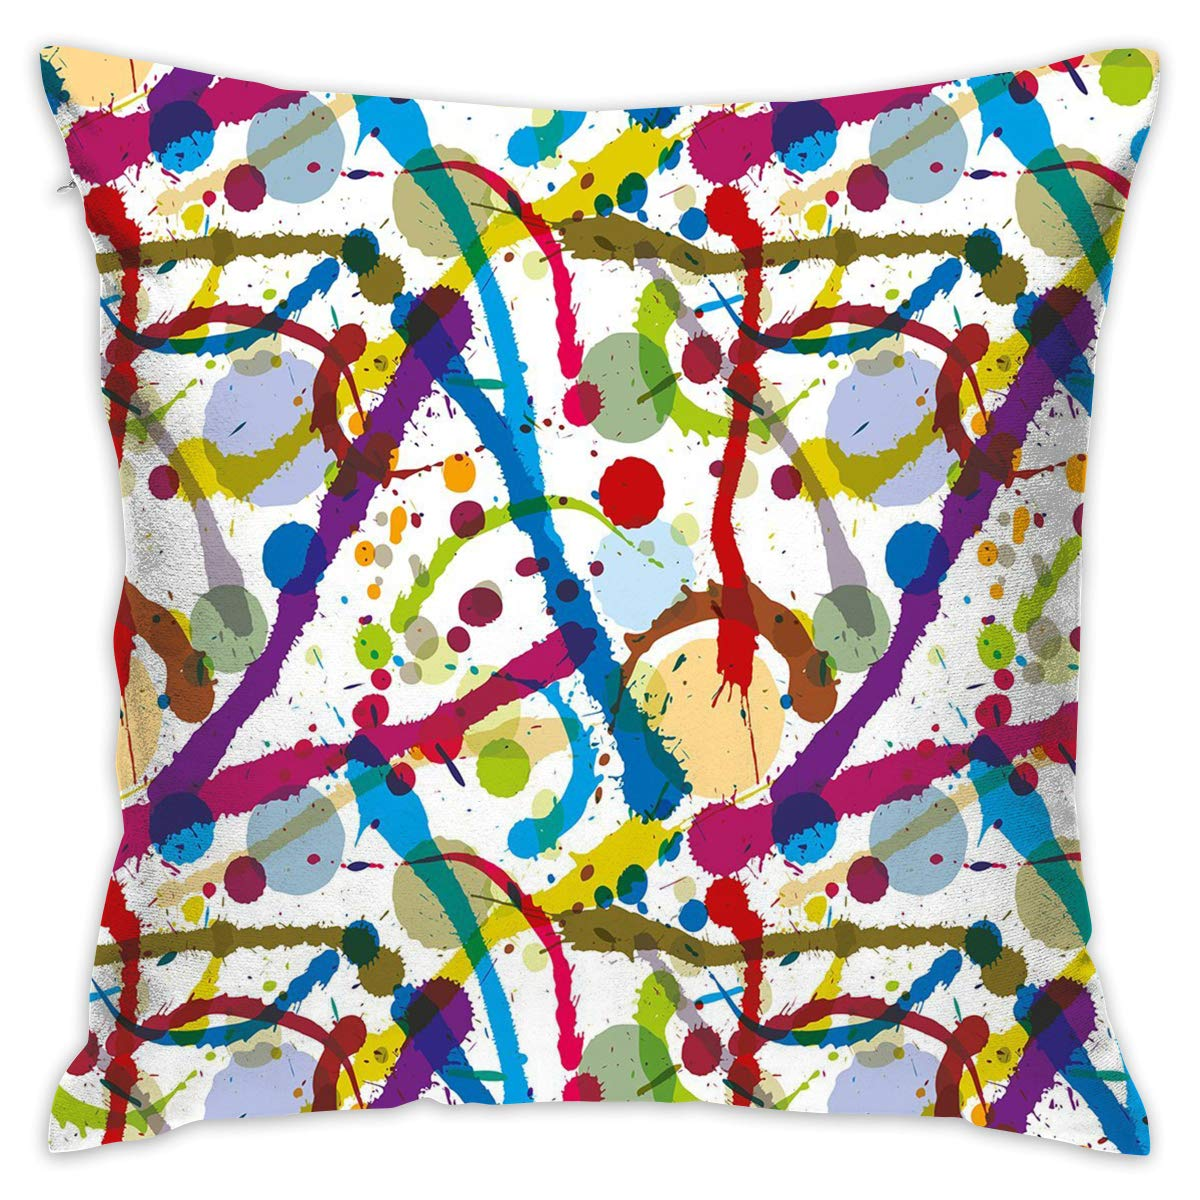 Shepinqee Nutmix Chair 18inx18in Pillowcase (Without Insert) Grunge Artistic Colorful Ink Splatters Creative Inspiration Stained Dirty Messy Display Decorative by Shepinqee (Image #1)